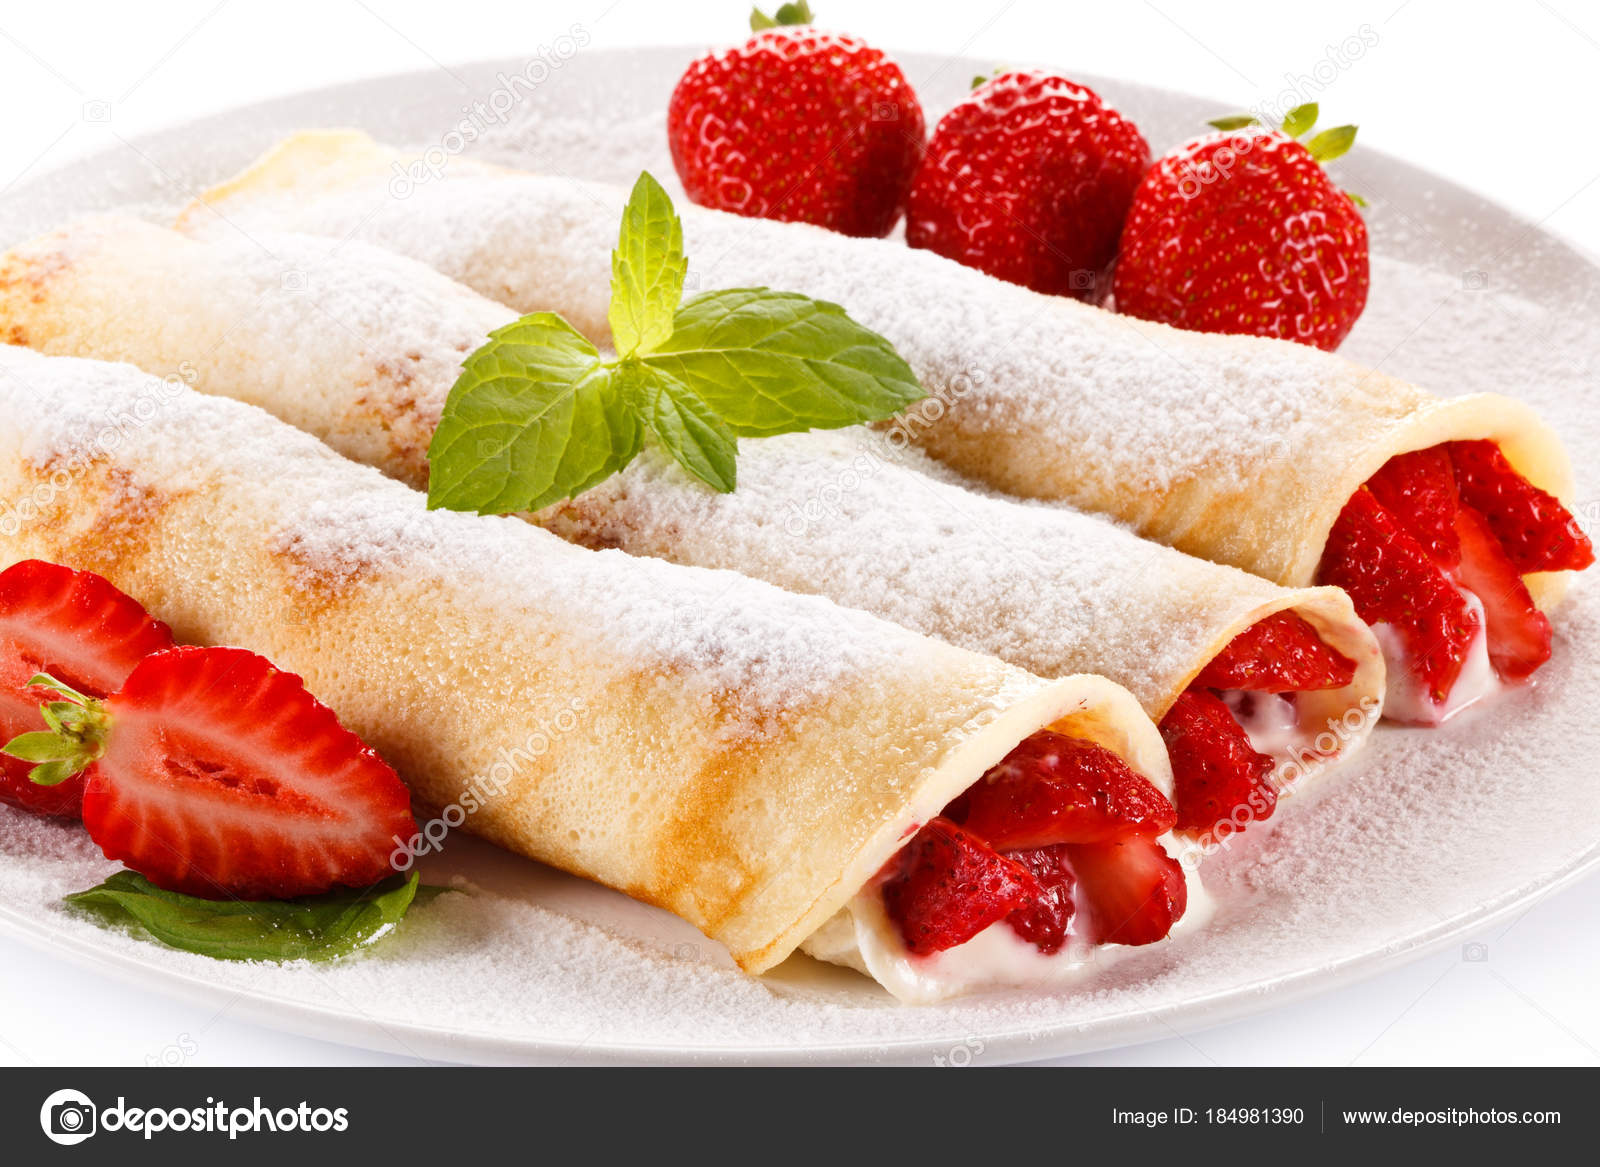 pancakes with strawberries - HD1280×853